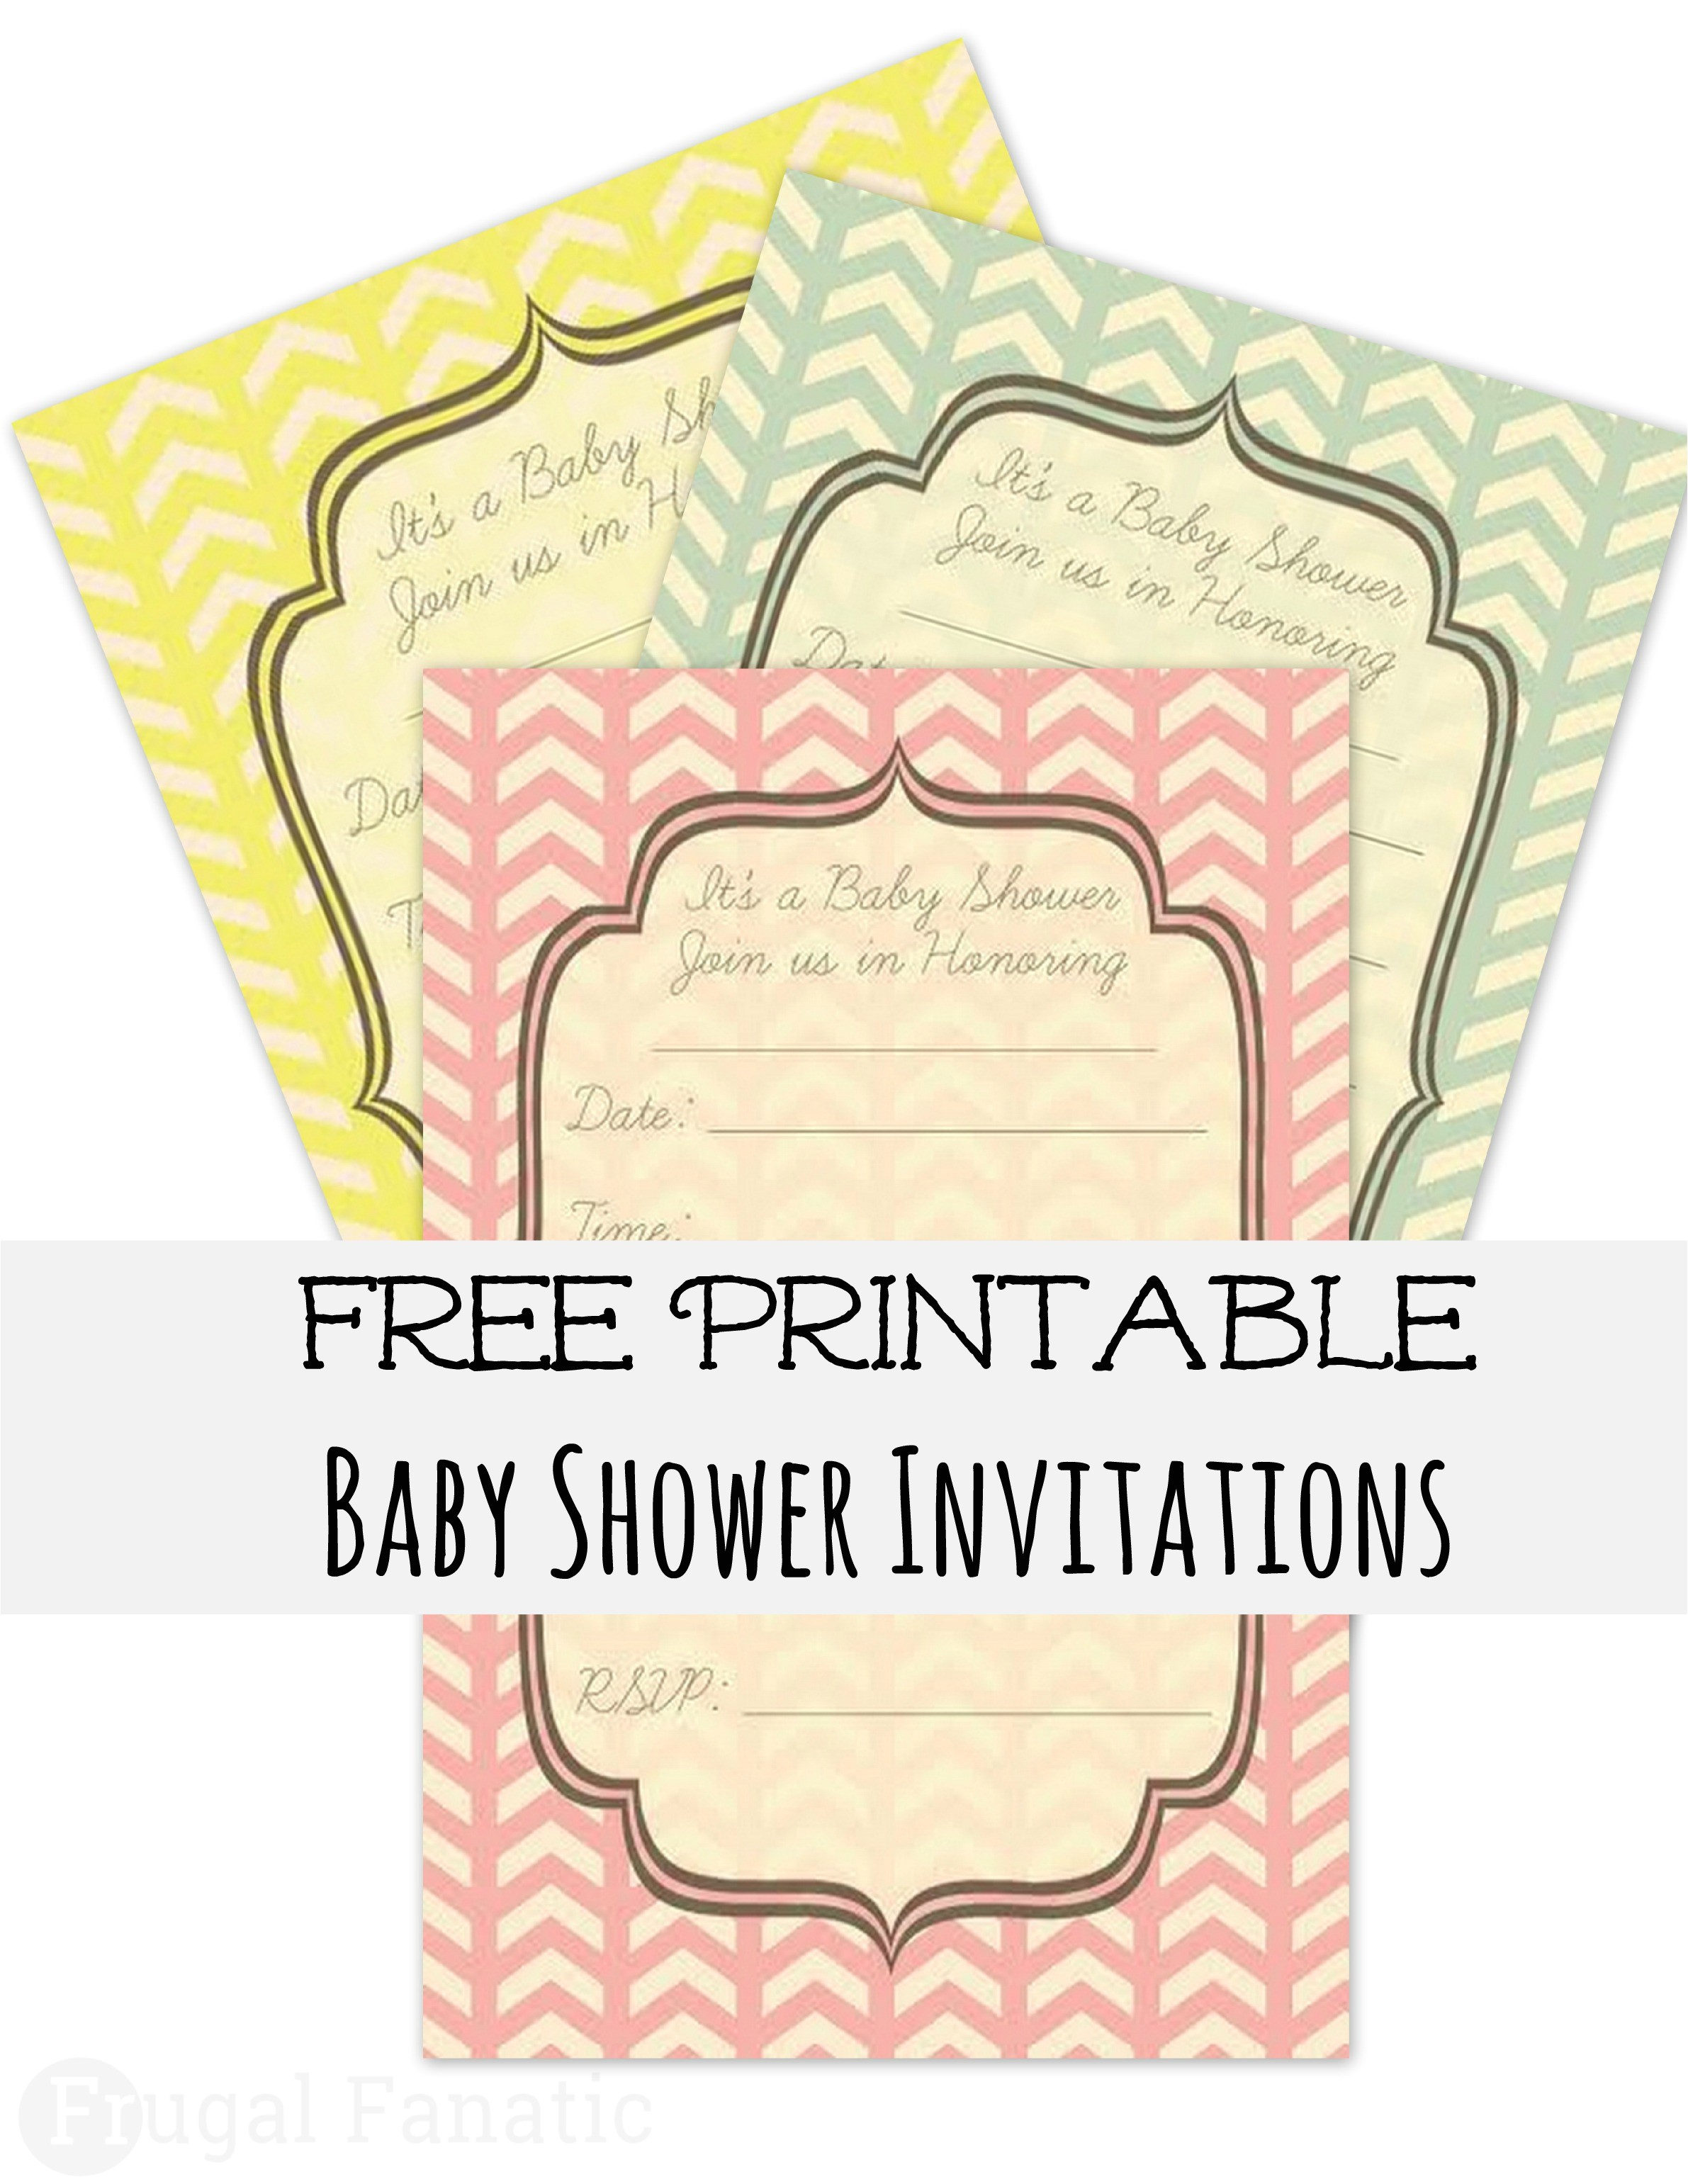 Design Your Own Baby Shower Invitations for Free Baby Shower Invitations Create Your Own Free